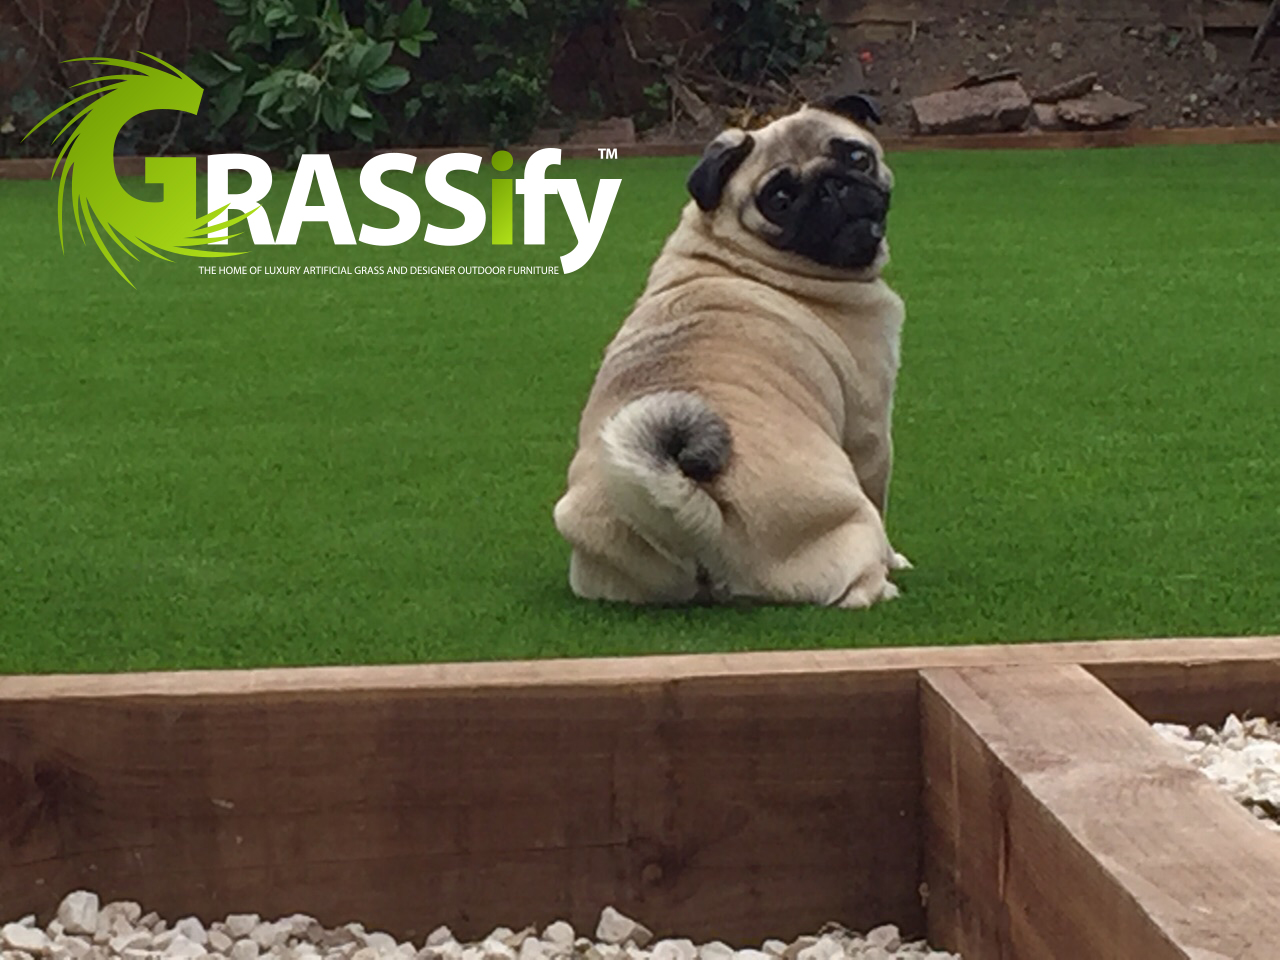 Astro Turf for Dogs, Artificial Grass for Dogs, Artificial Grass for Gardens